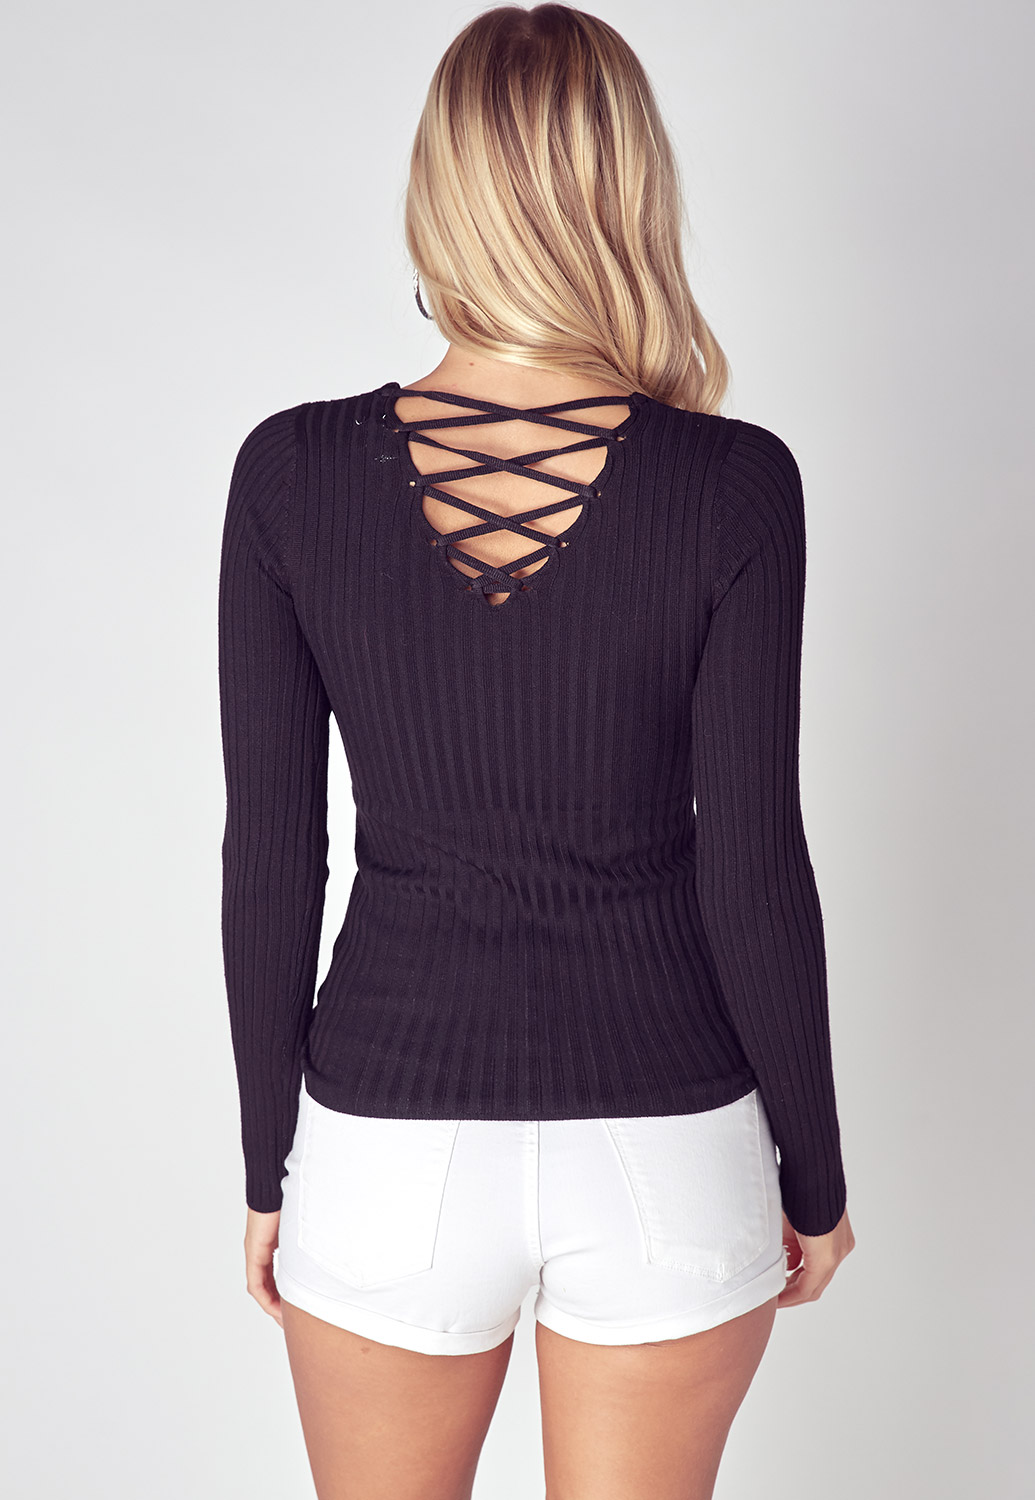 Criss Cross Back Detailed Ribbed Top